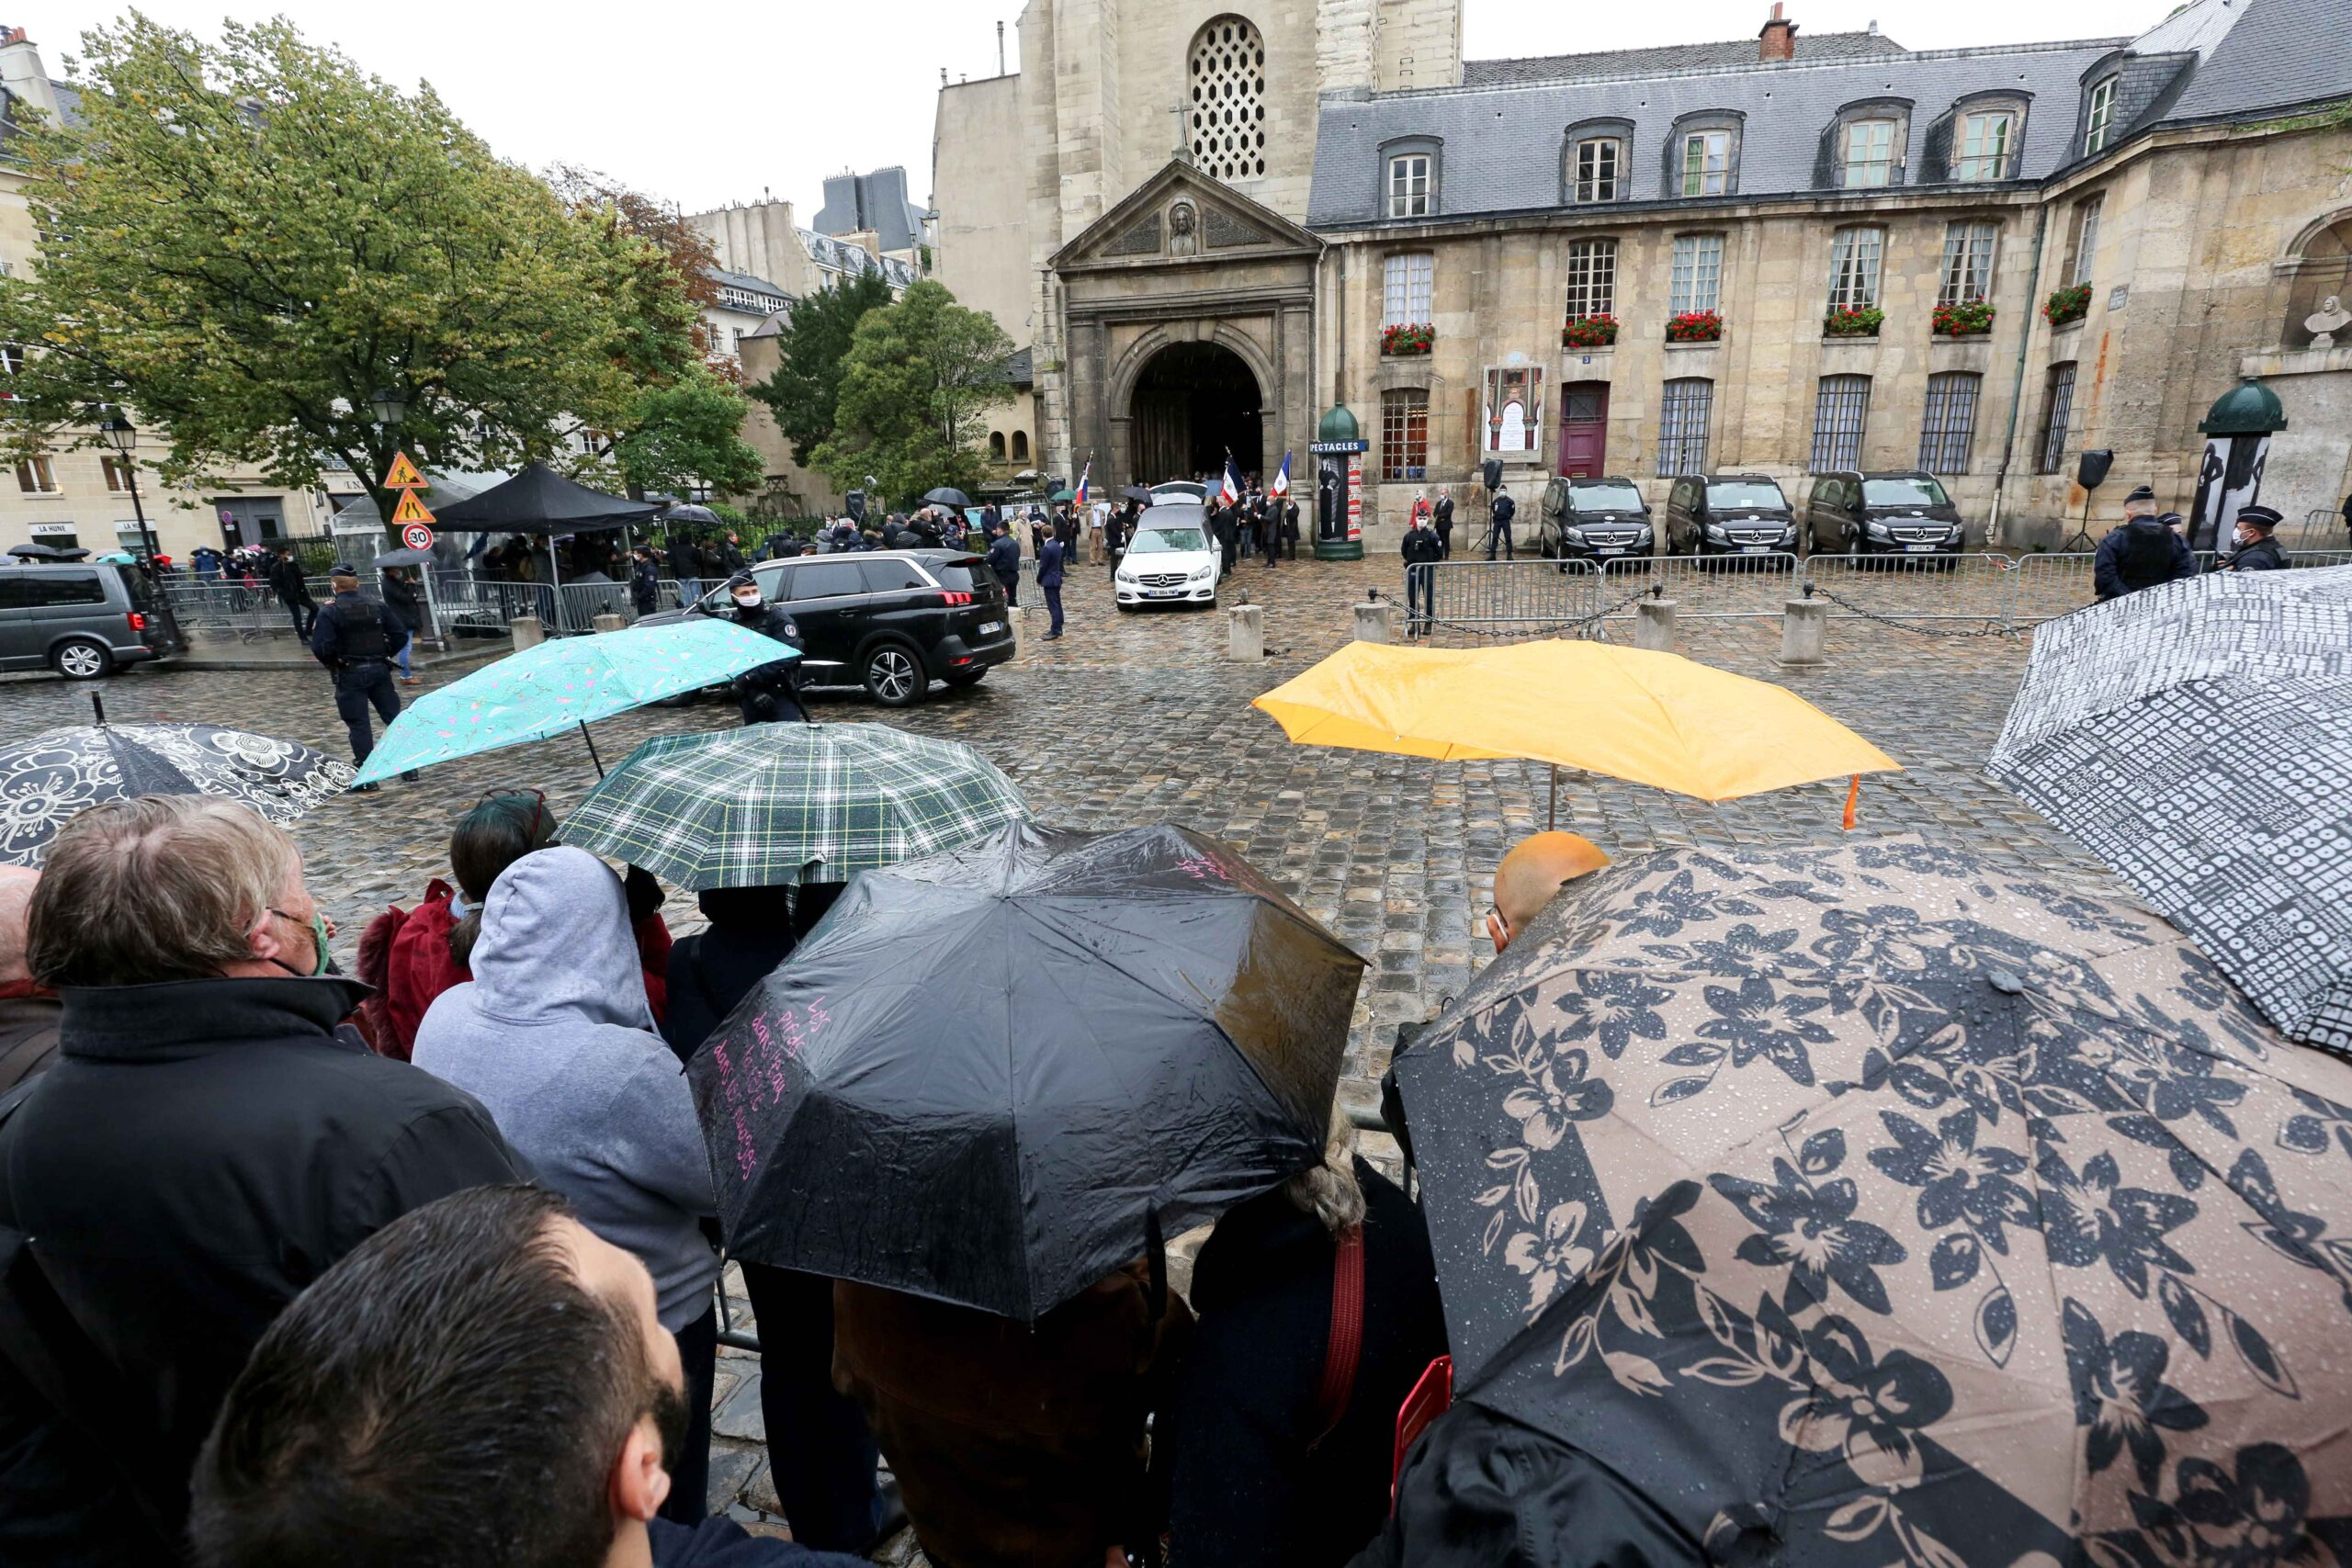 People attends the funerals of French singer Juliette Greco, at the Saint-Germain-des-Pres church in Paris, on October 5, 2020. Legendary French singer Juliette Greco, whose career spanned over half a century, died aged 93, on September 23, 2020.